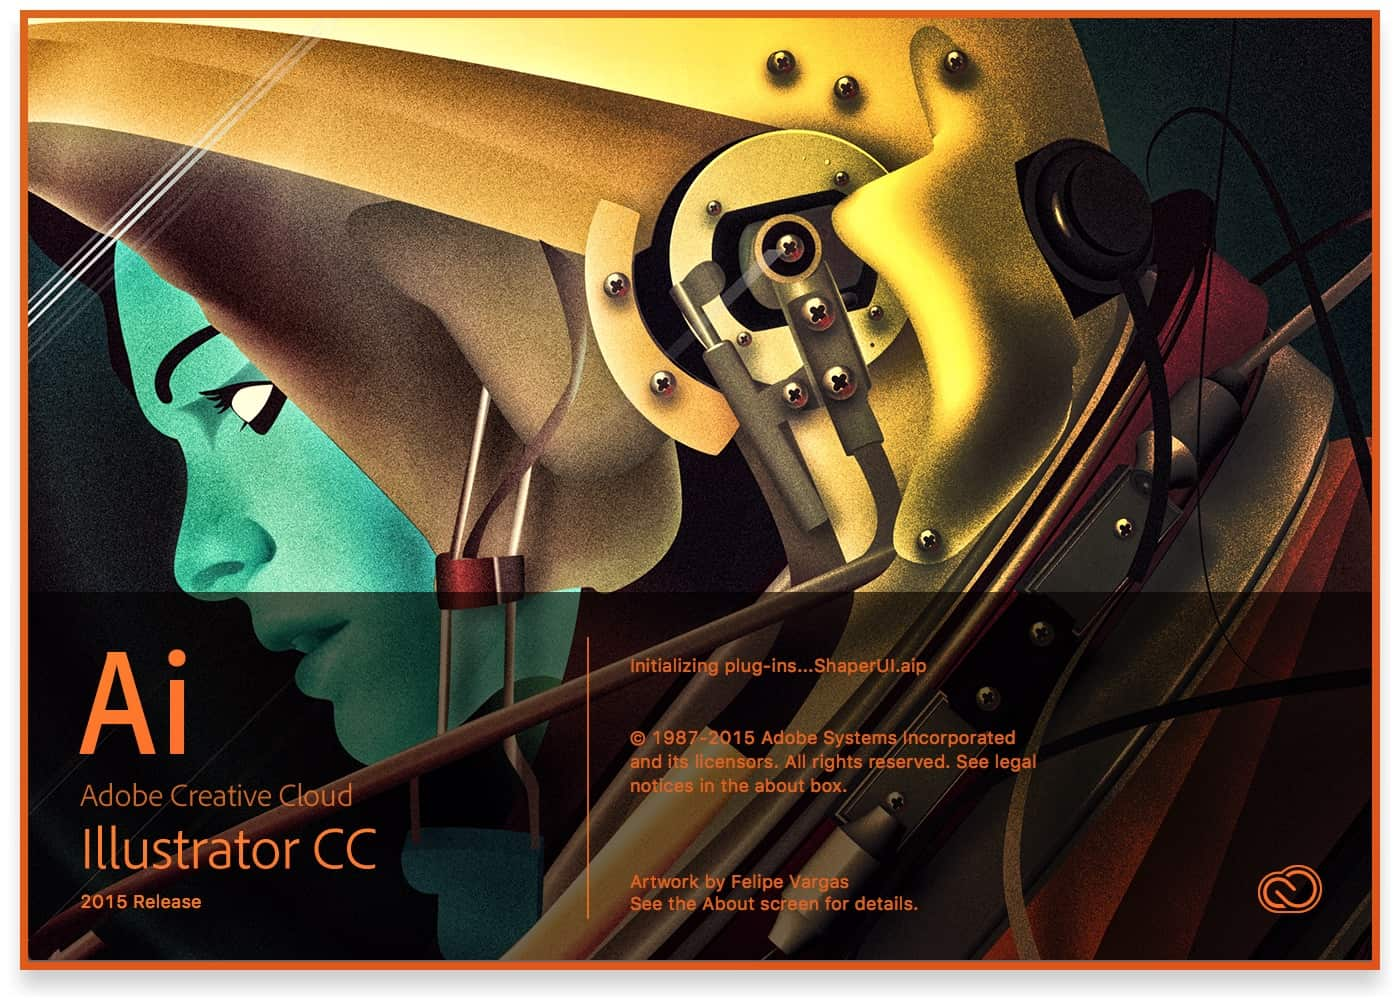 adobe illustrator cc15 free download with crack